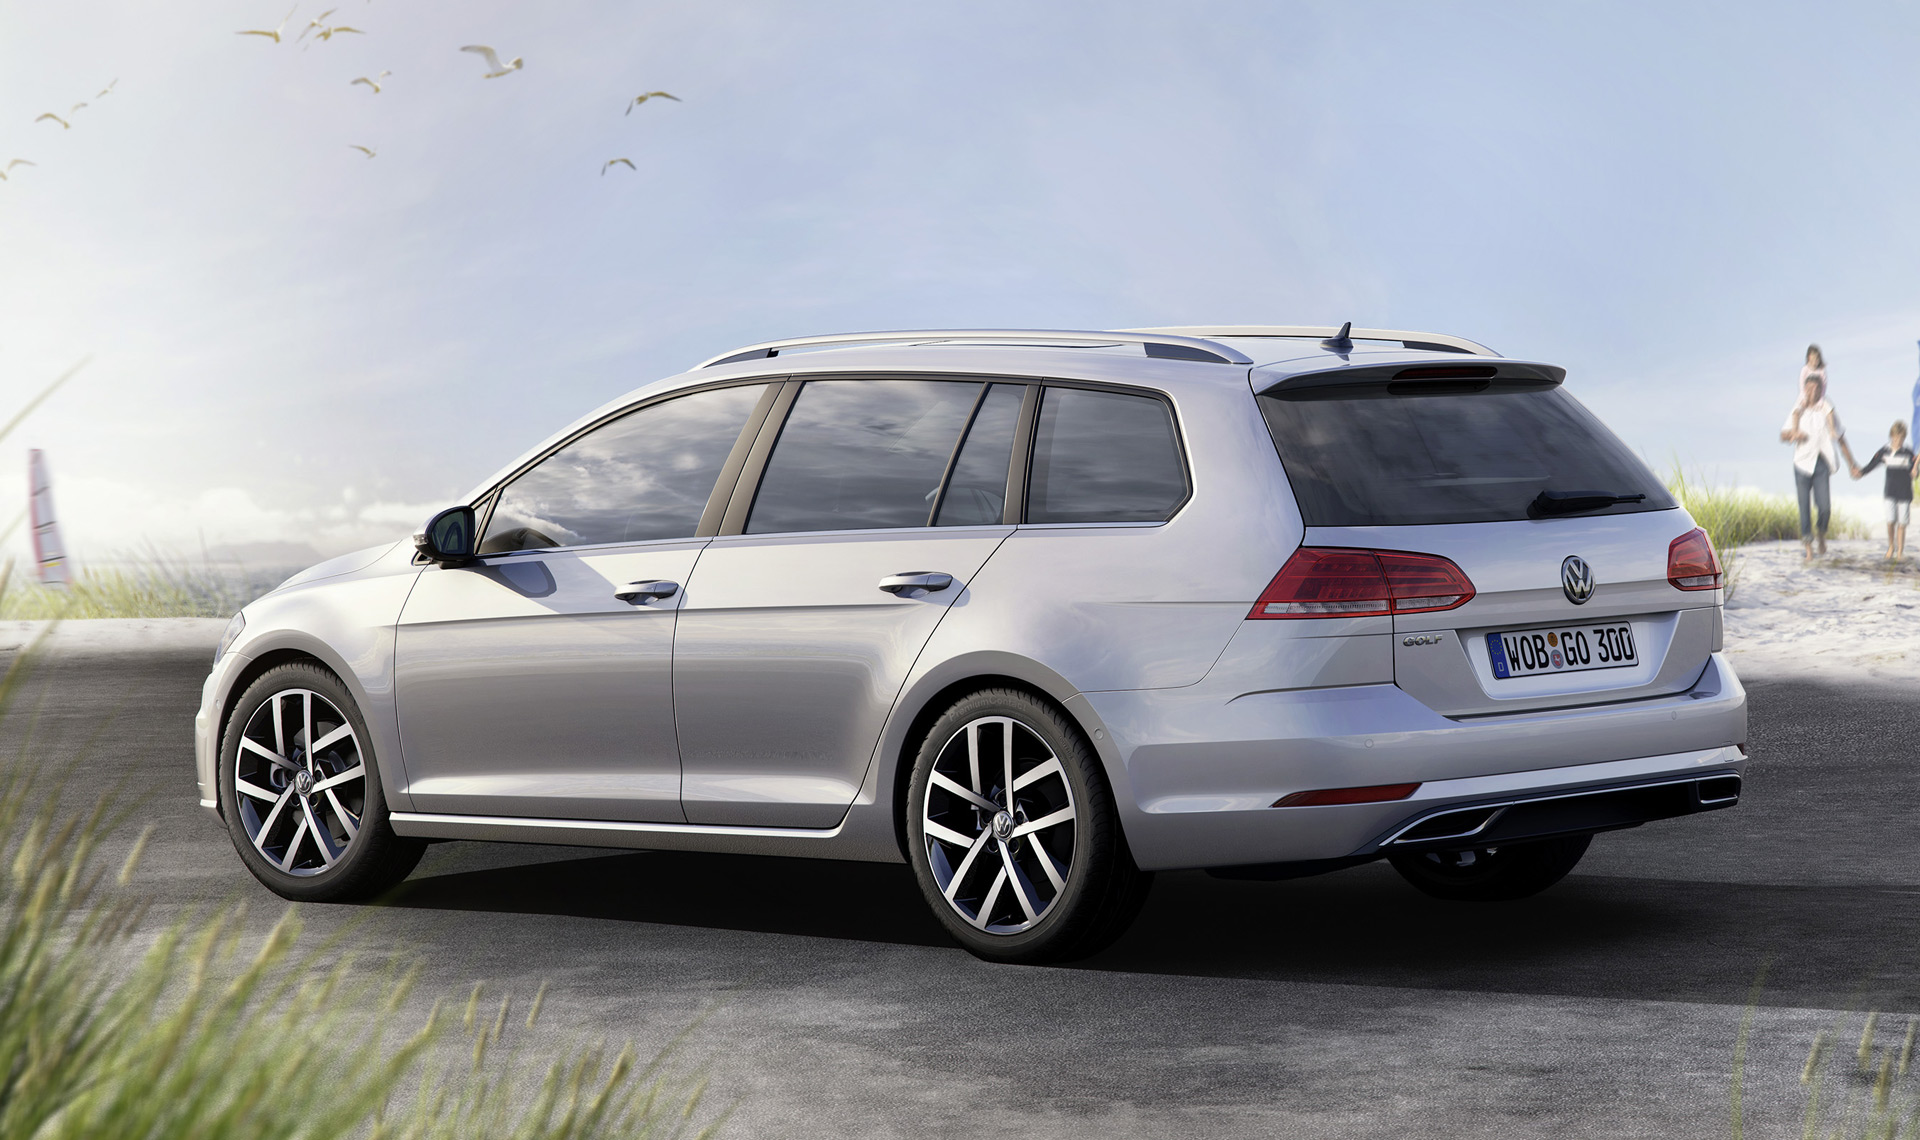 Coole Sportwagen Volkswagen Golf Sportwagen The Car Connection S Best Wagon To Buy